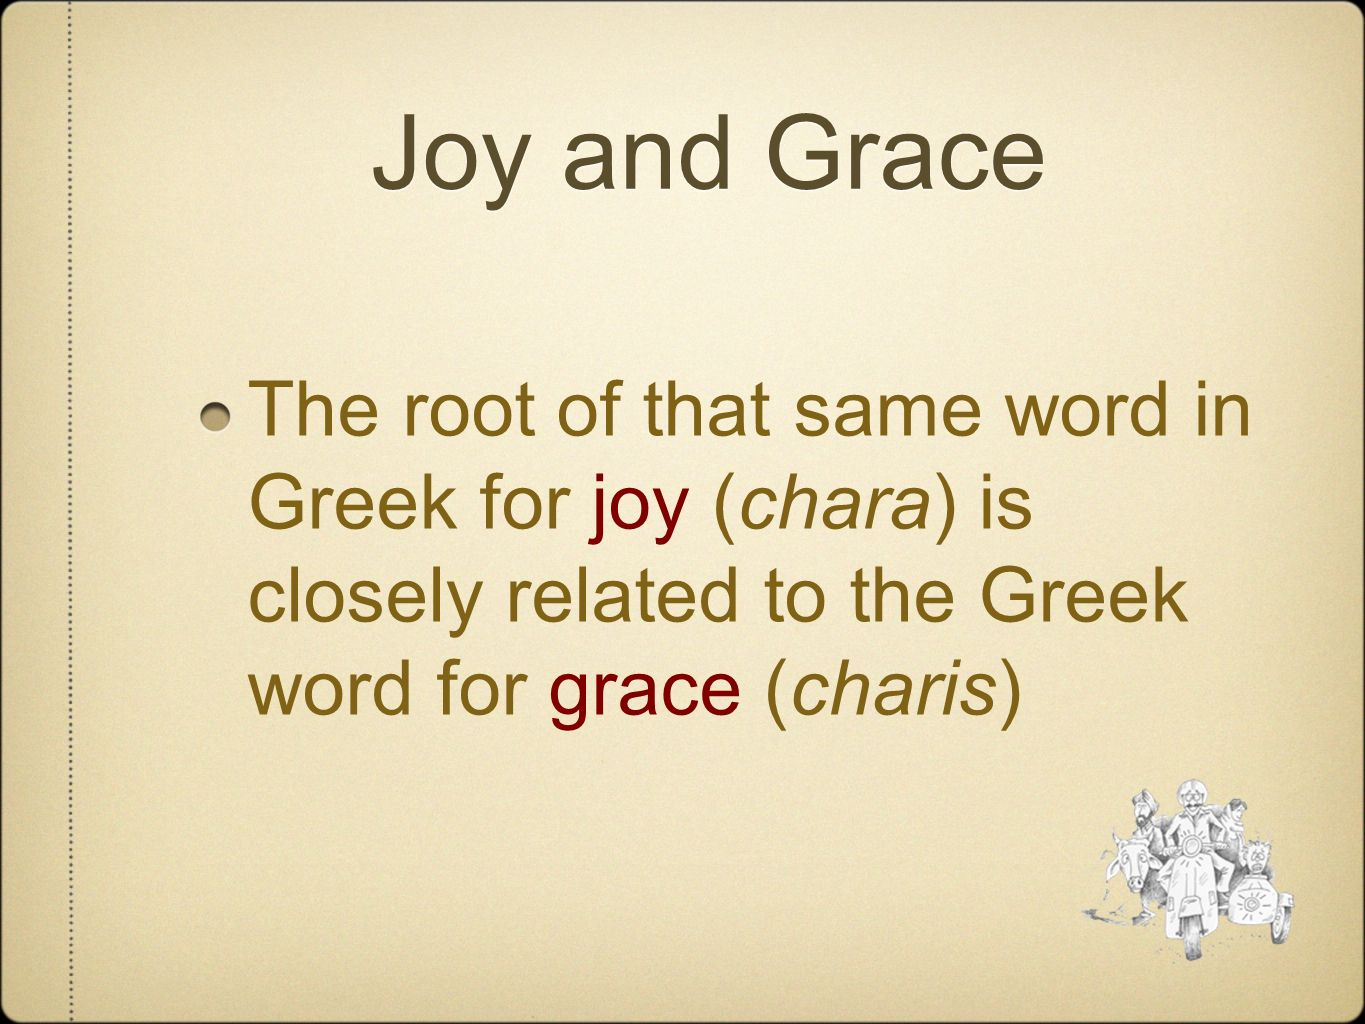 Joy and Grace The root of that same word in Greek for joy (chara) is closely related to the Greek word for grace (charis)